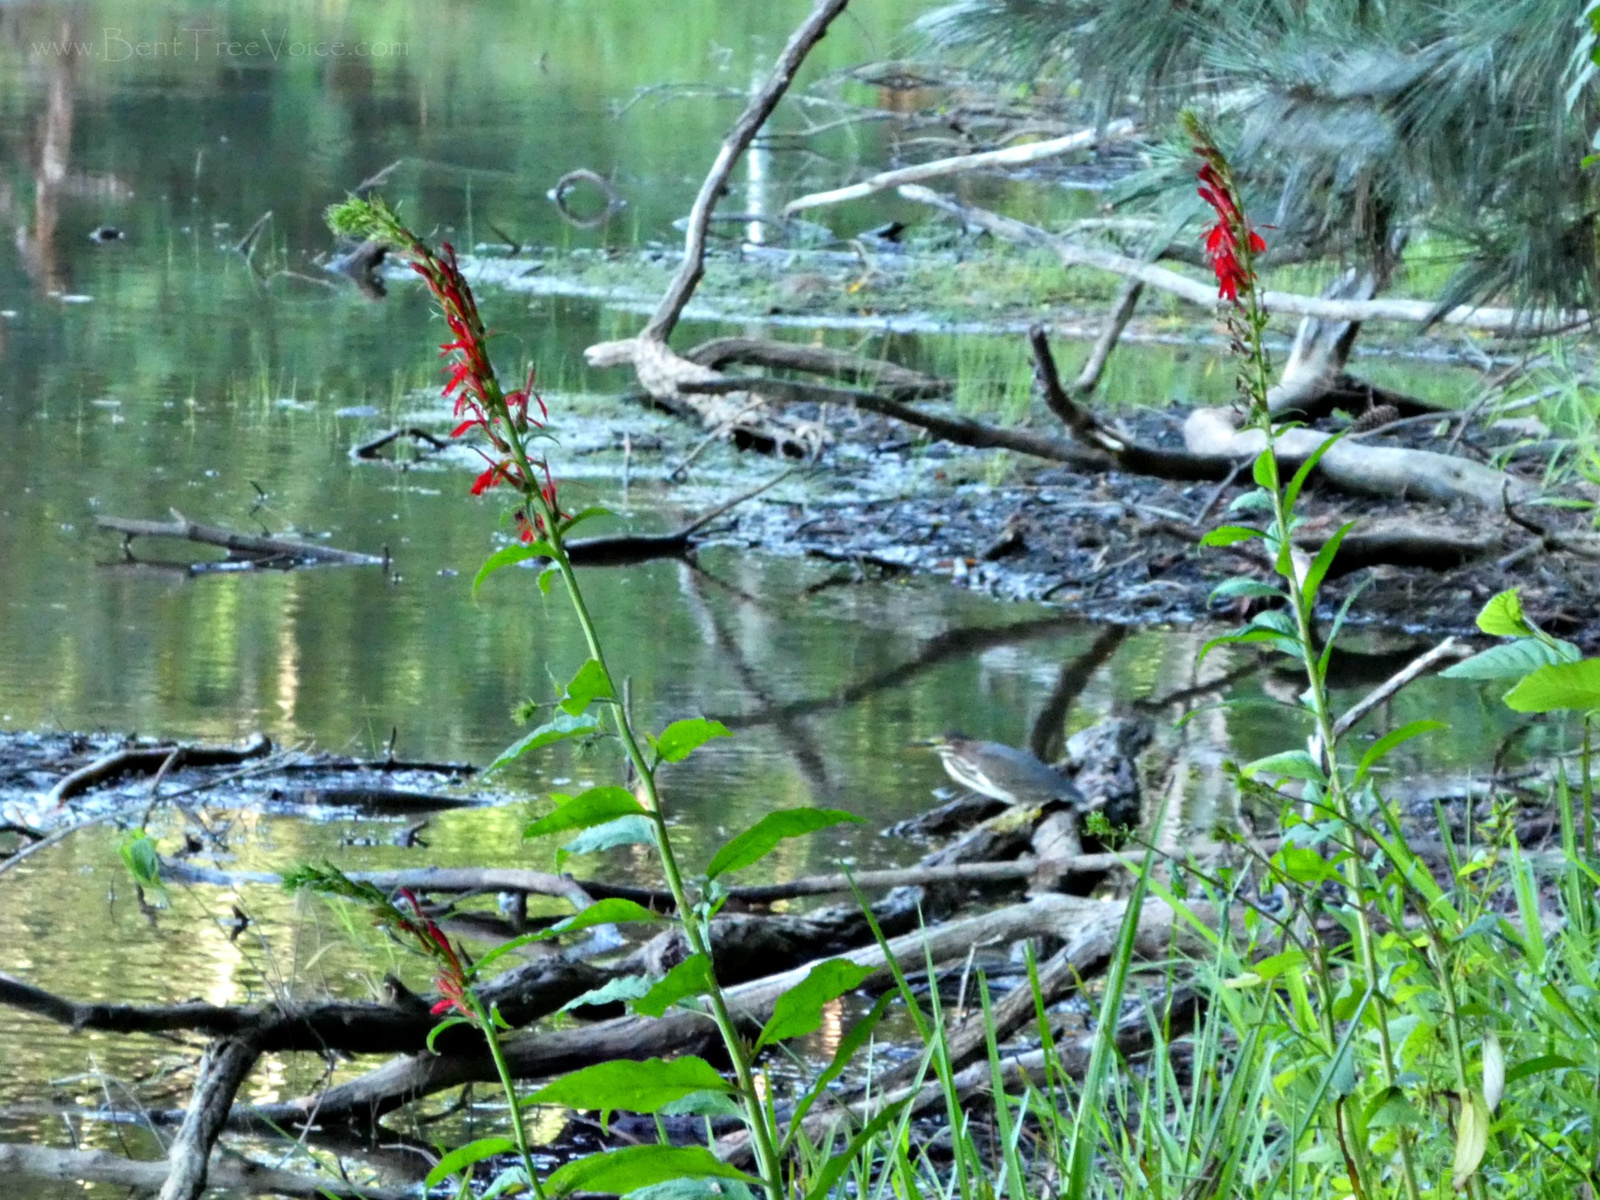 August 18, 2019 - Cardinal flowers (and a green heron) along Lake Tamarack in Bent Tree